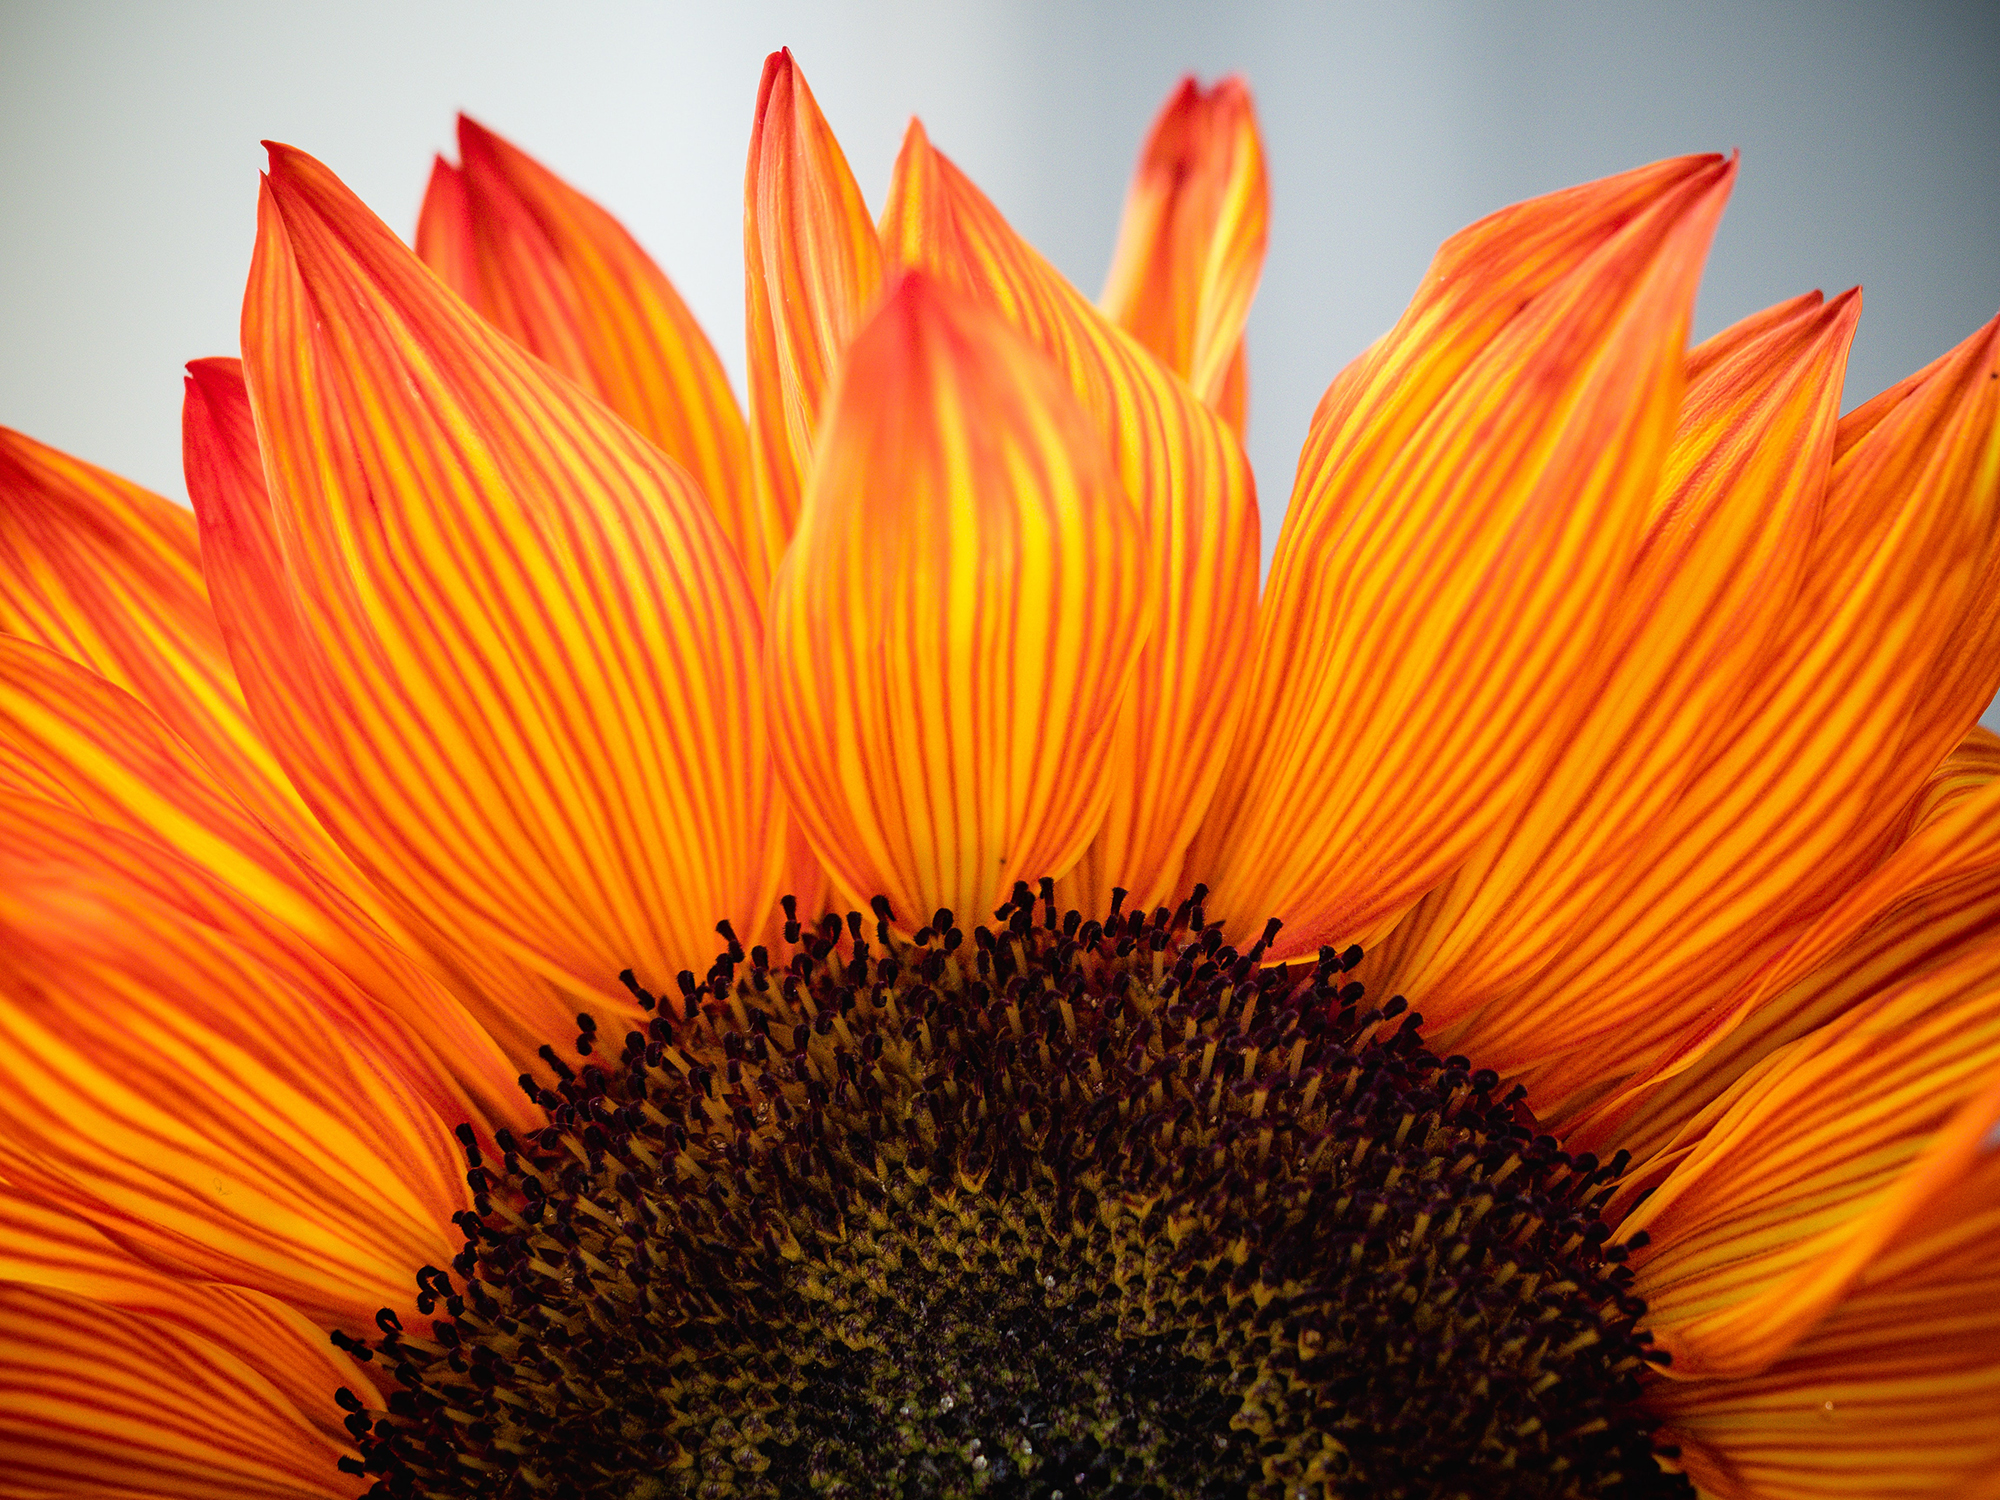 Close up of an orange sunflower